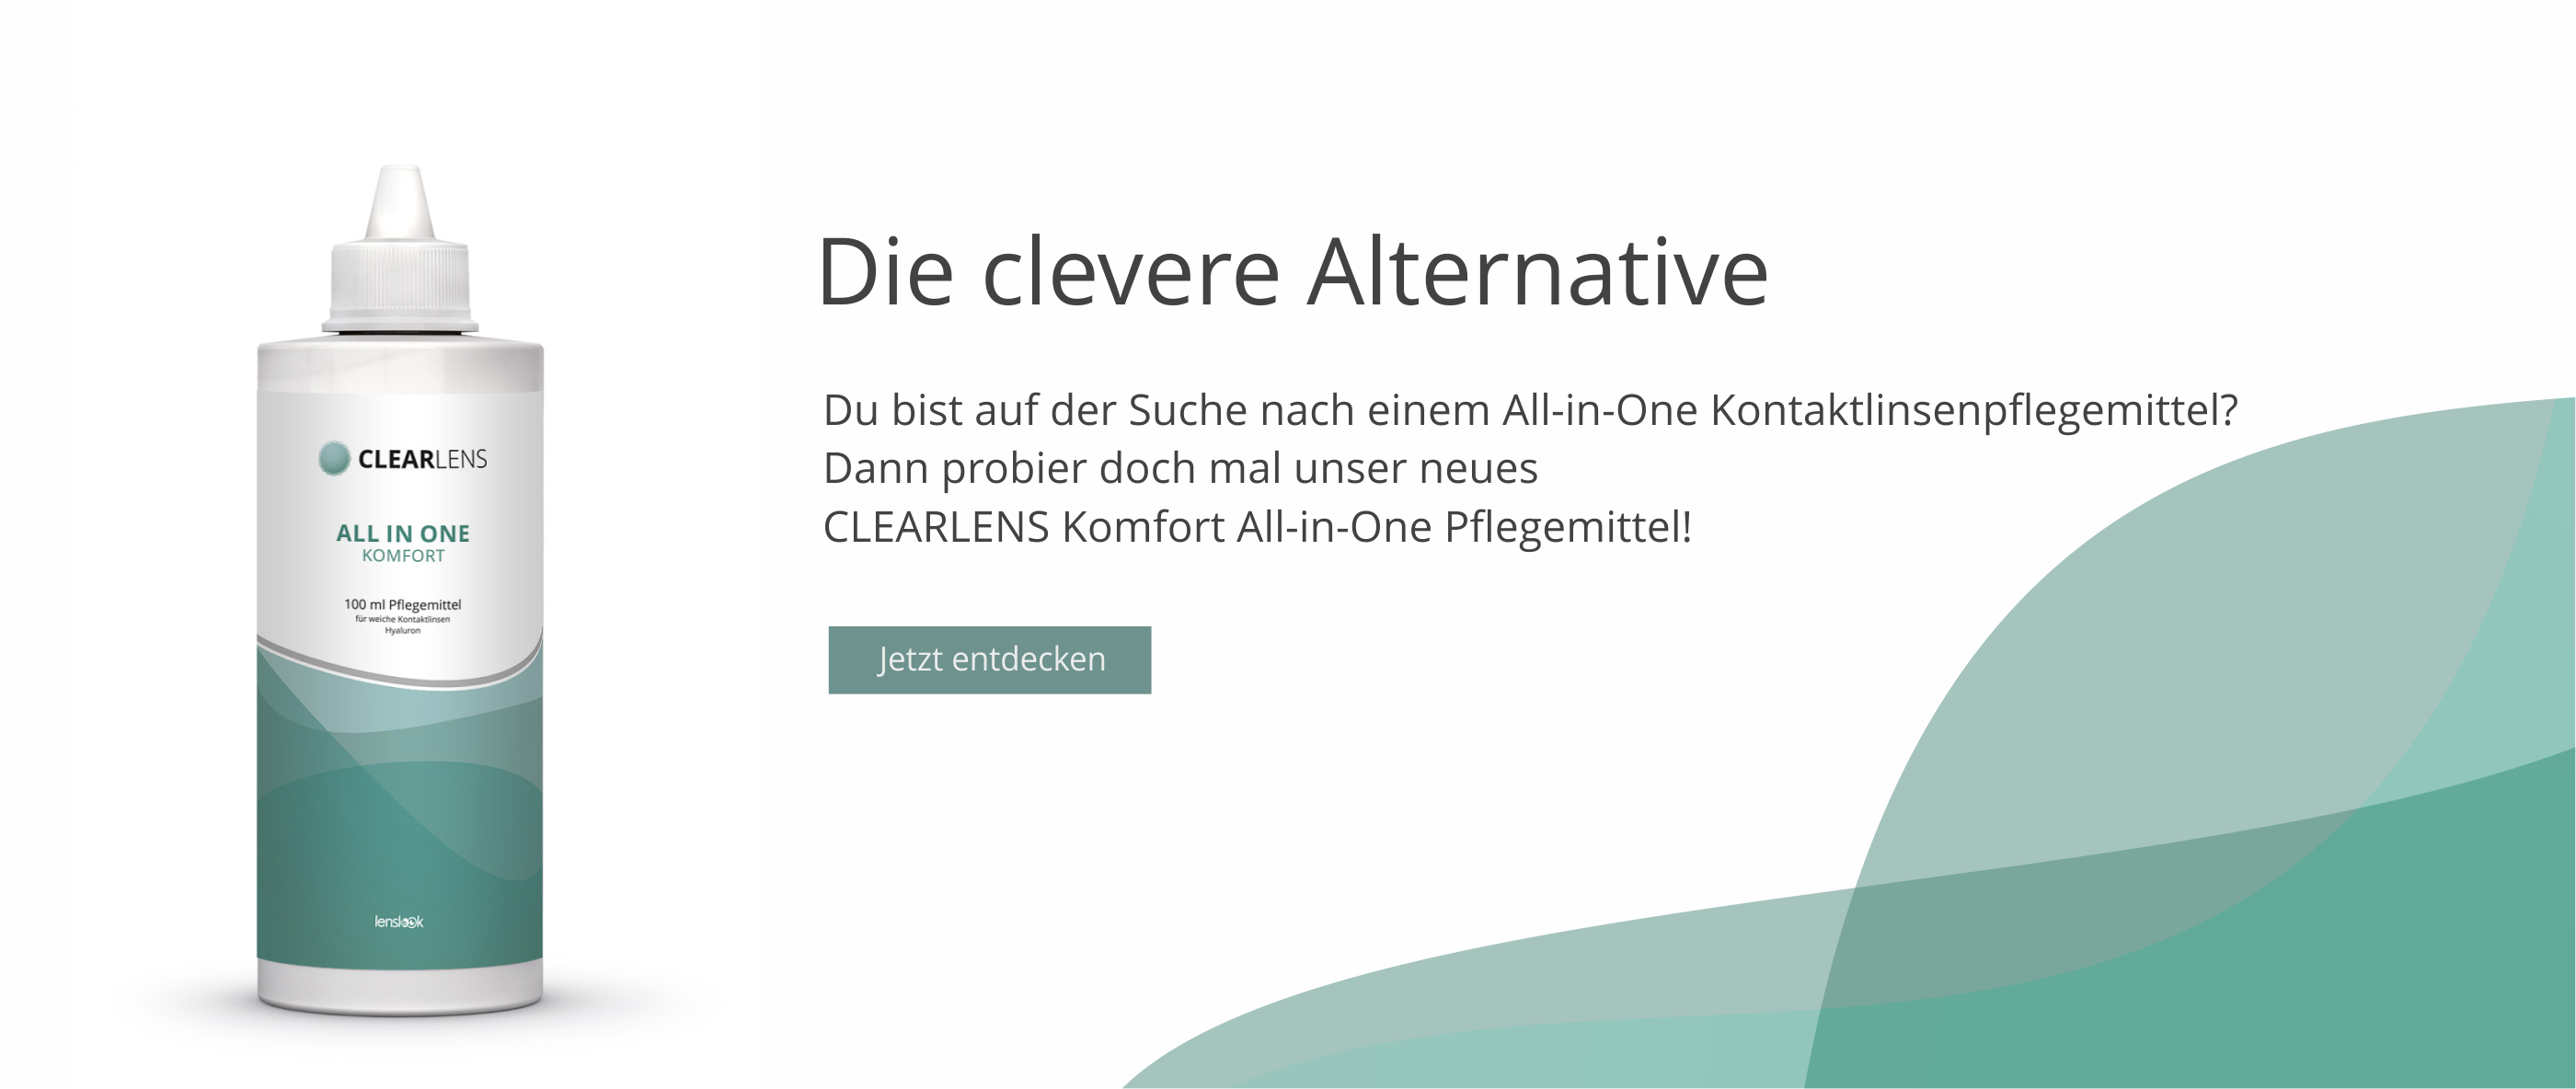 ClearLens_Alternative_Komfort_100ml